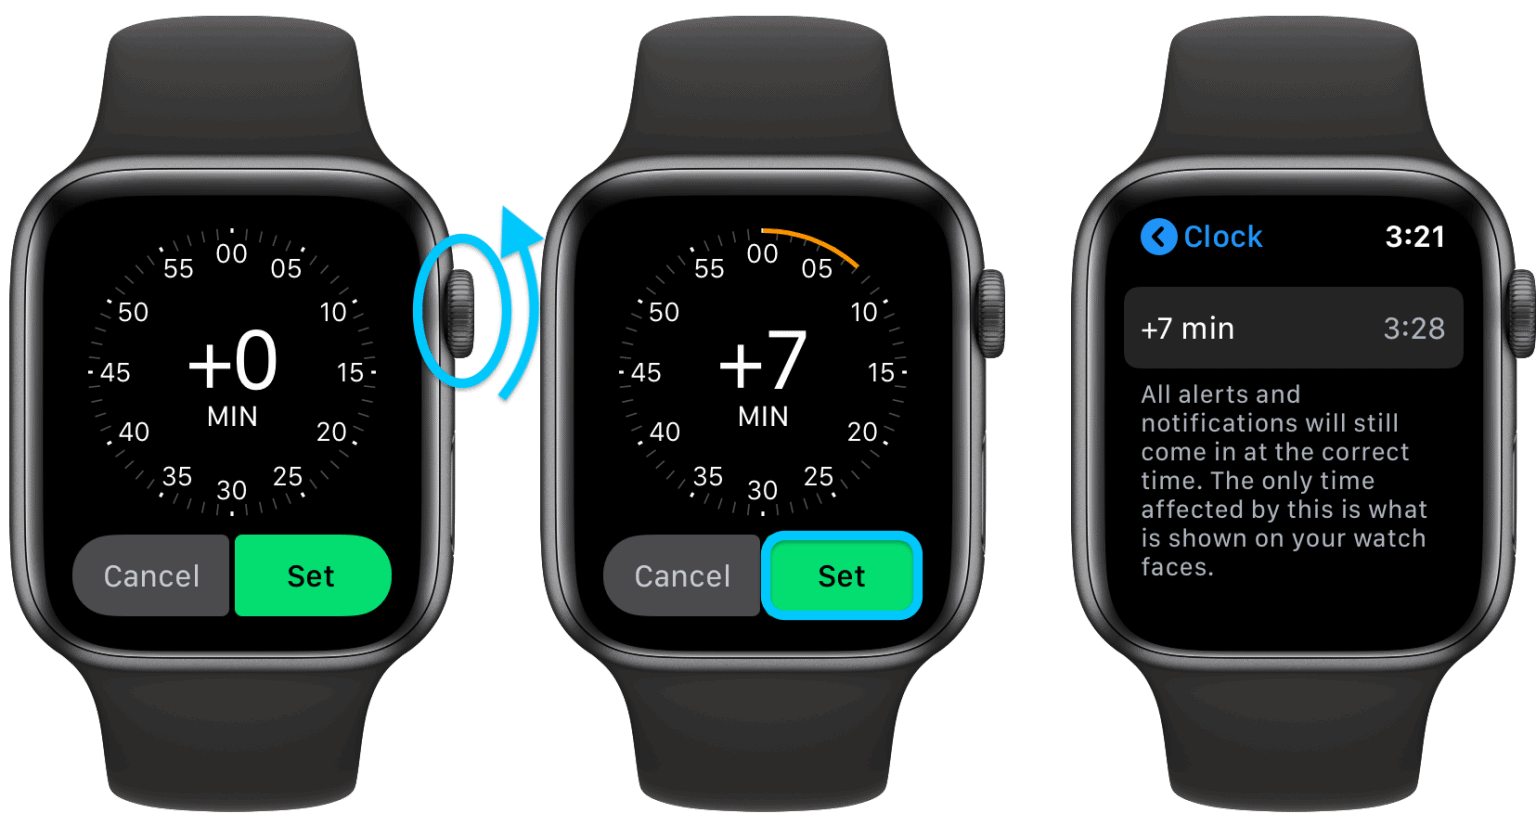 How to Set the Time on an Apple Watch Manually